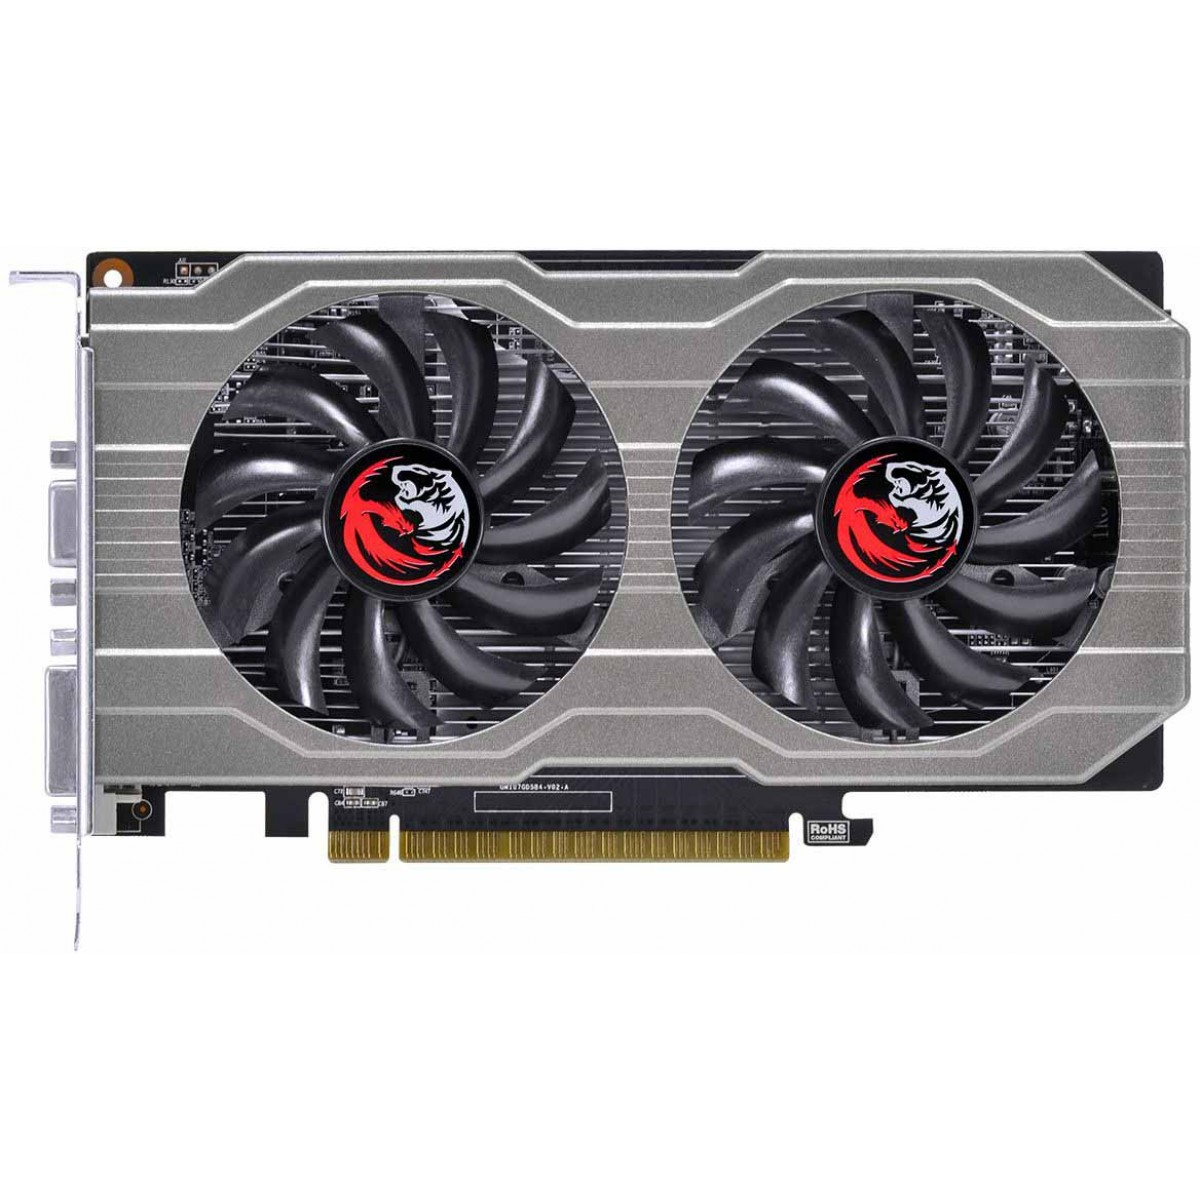 Placa de Vídeo PCYES GeForce GTX 750 Ti Dual, 2GB GDDR5, 128Bit, PA750TI12802G5DF